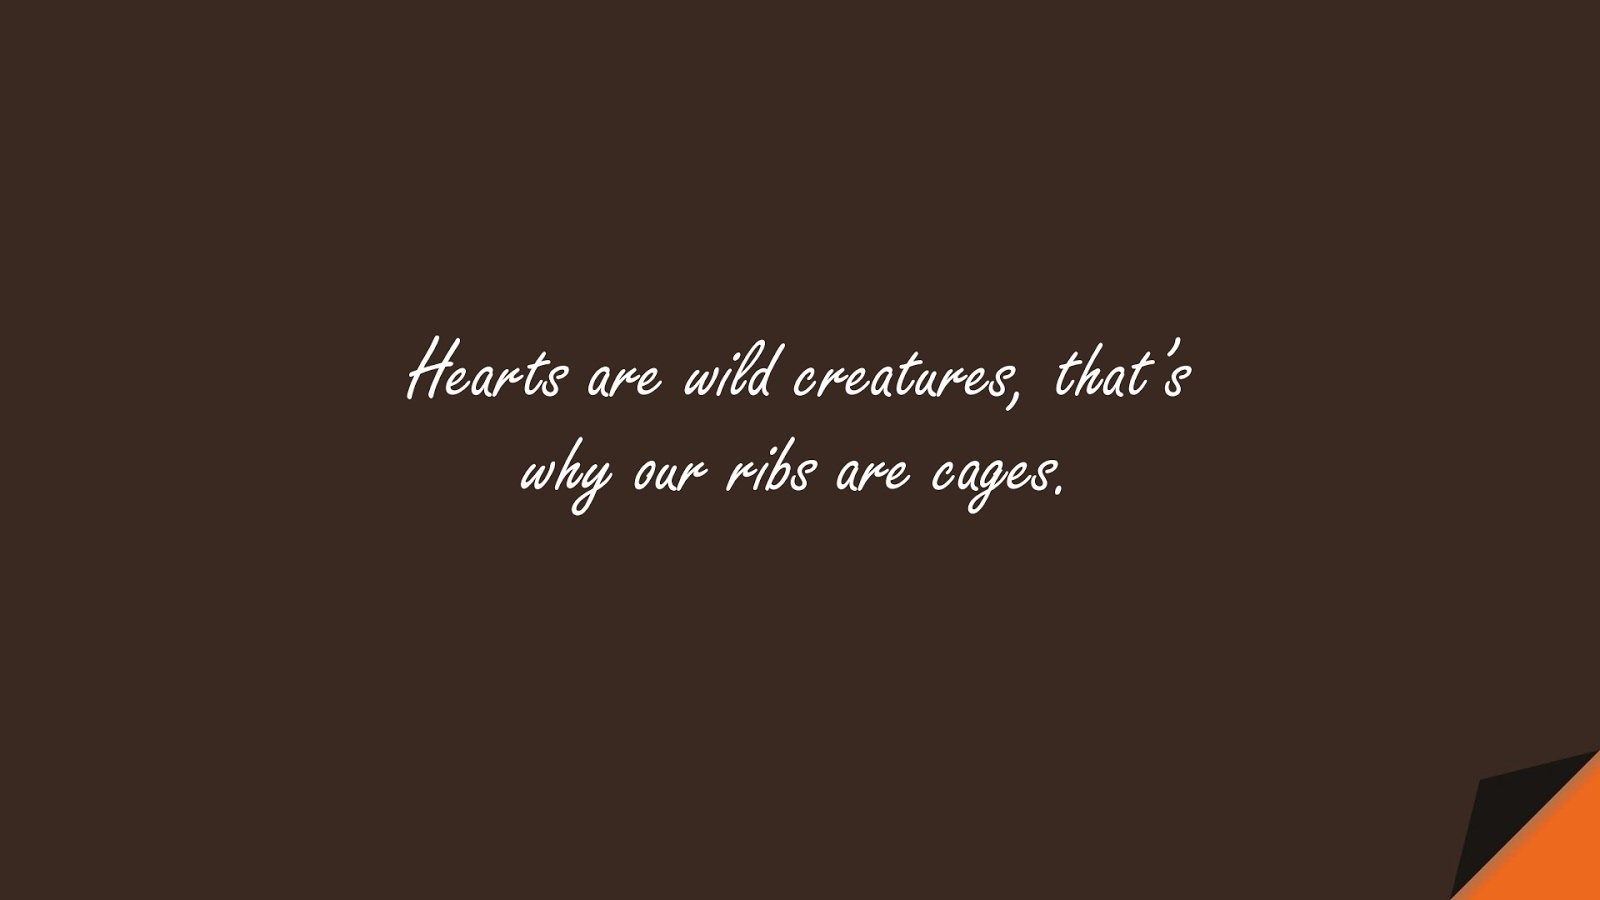 Hearts are wild creatures, that's why our ribs are cages.FALSE